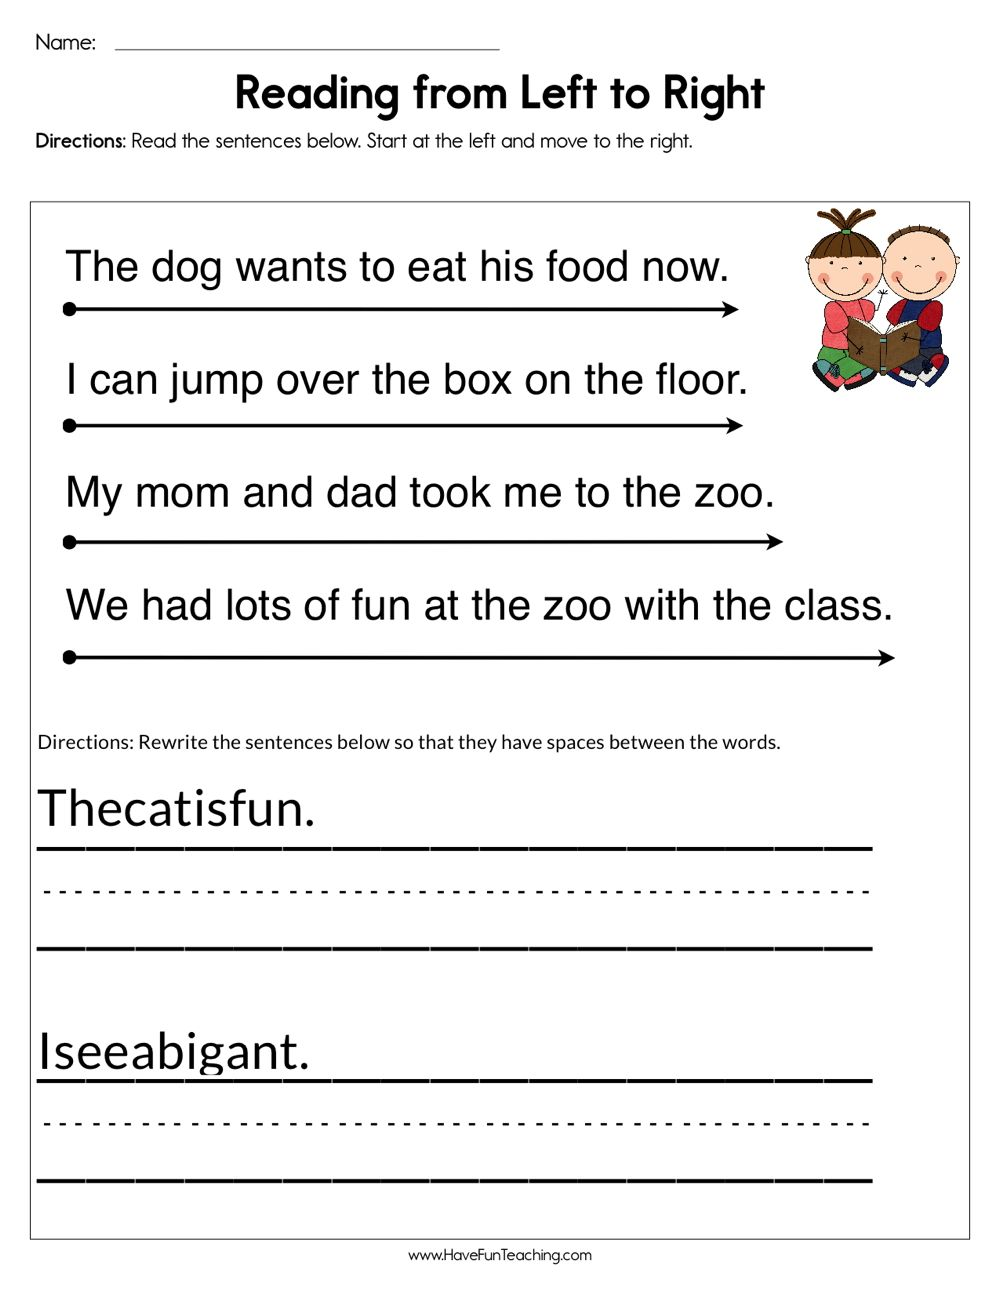 Pin By Have Fun Teaching On Preschool In 2020 Have Fun Teaching Reading Skills Reading Fluency